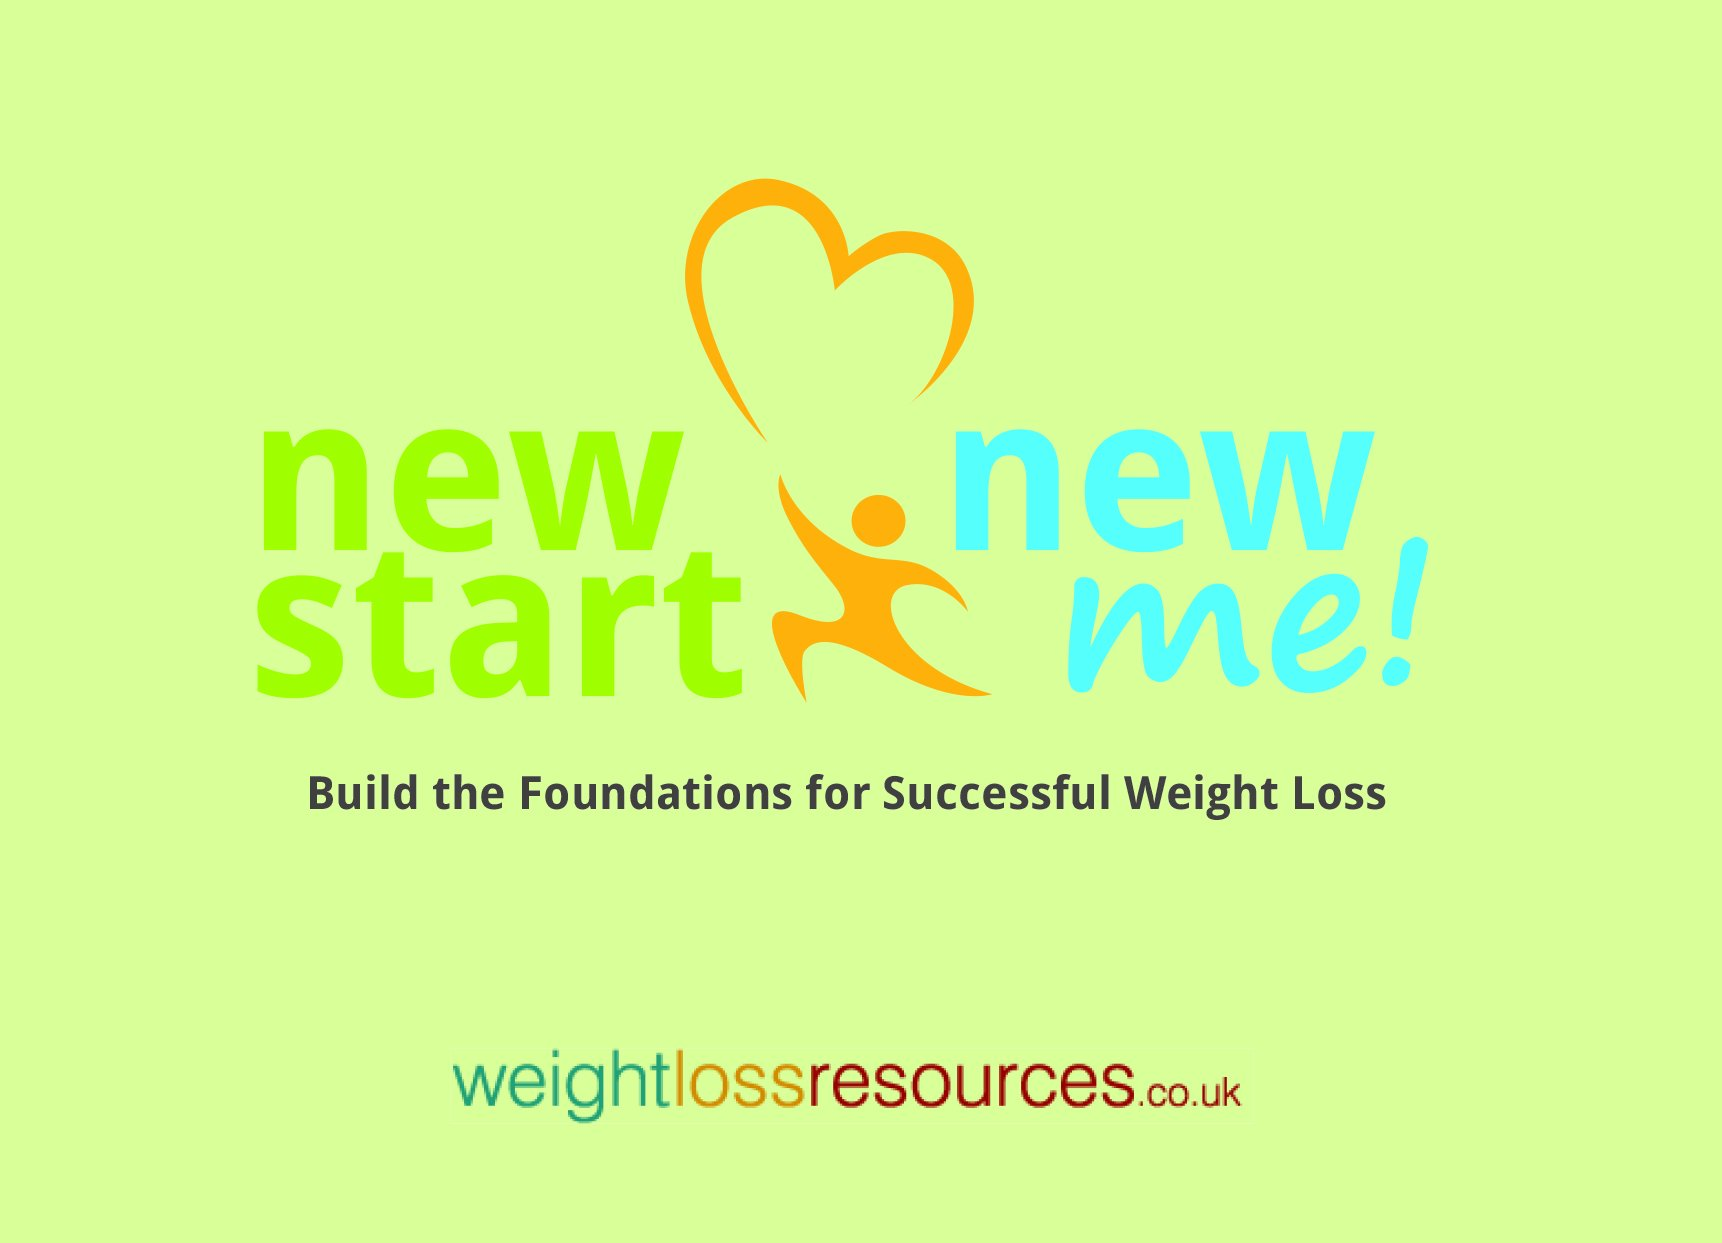 Weight loss resources weight loss